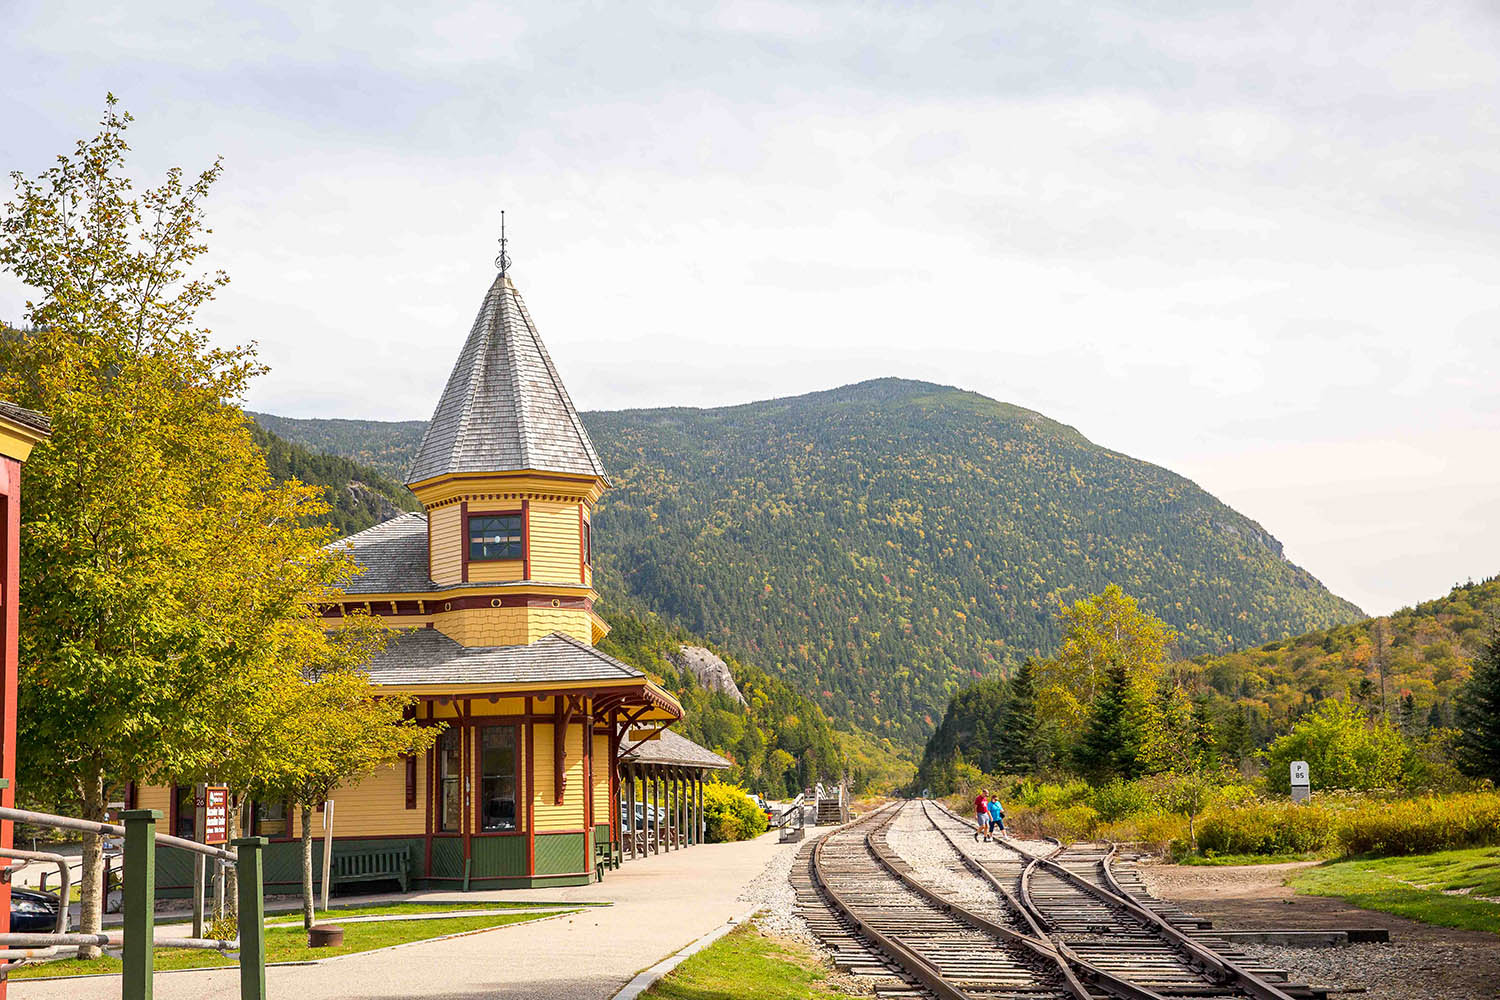 Railway station surrounded by mountains and foliage